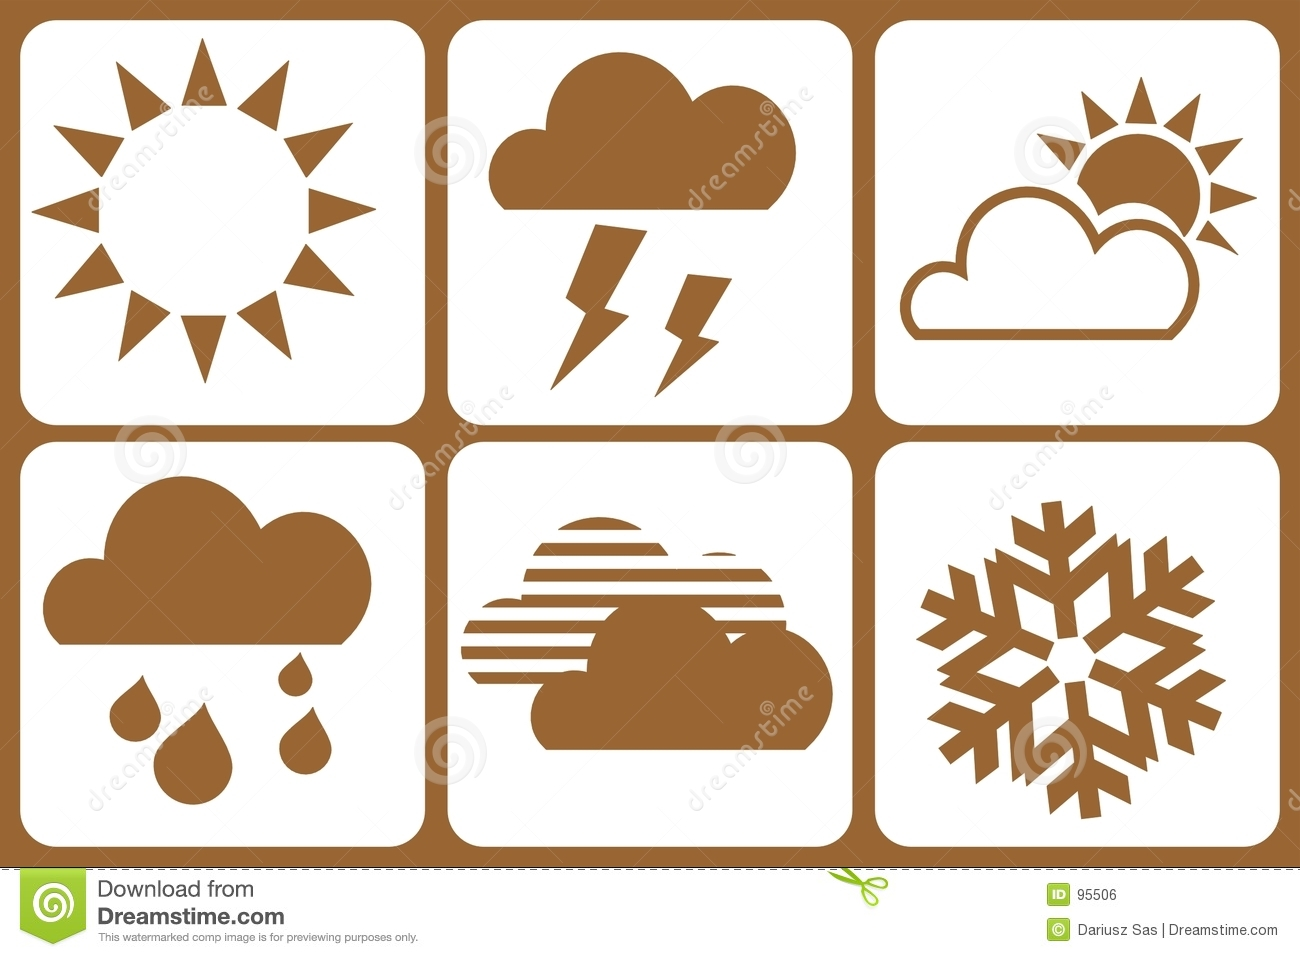 Design Elements - Weather Royalty Free Stock Image - Image: 95506